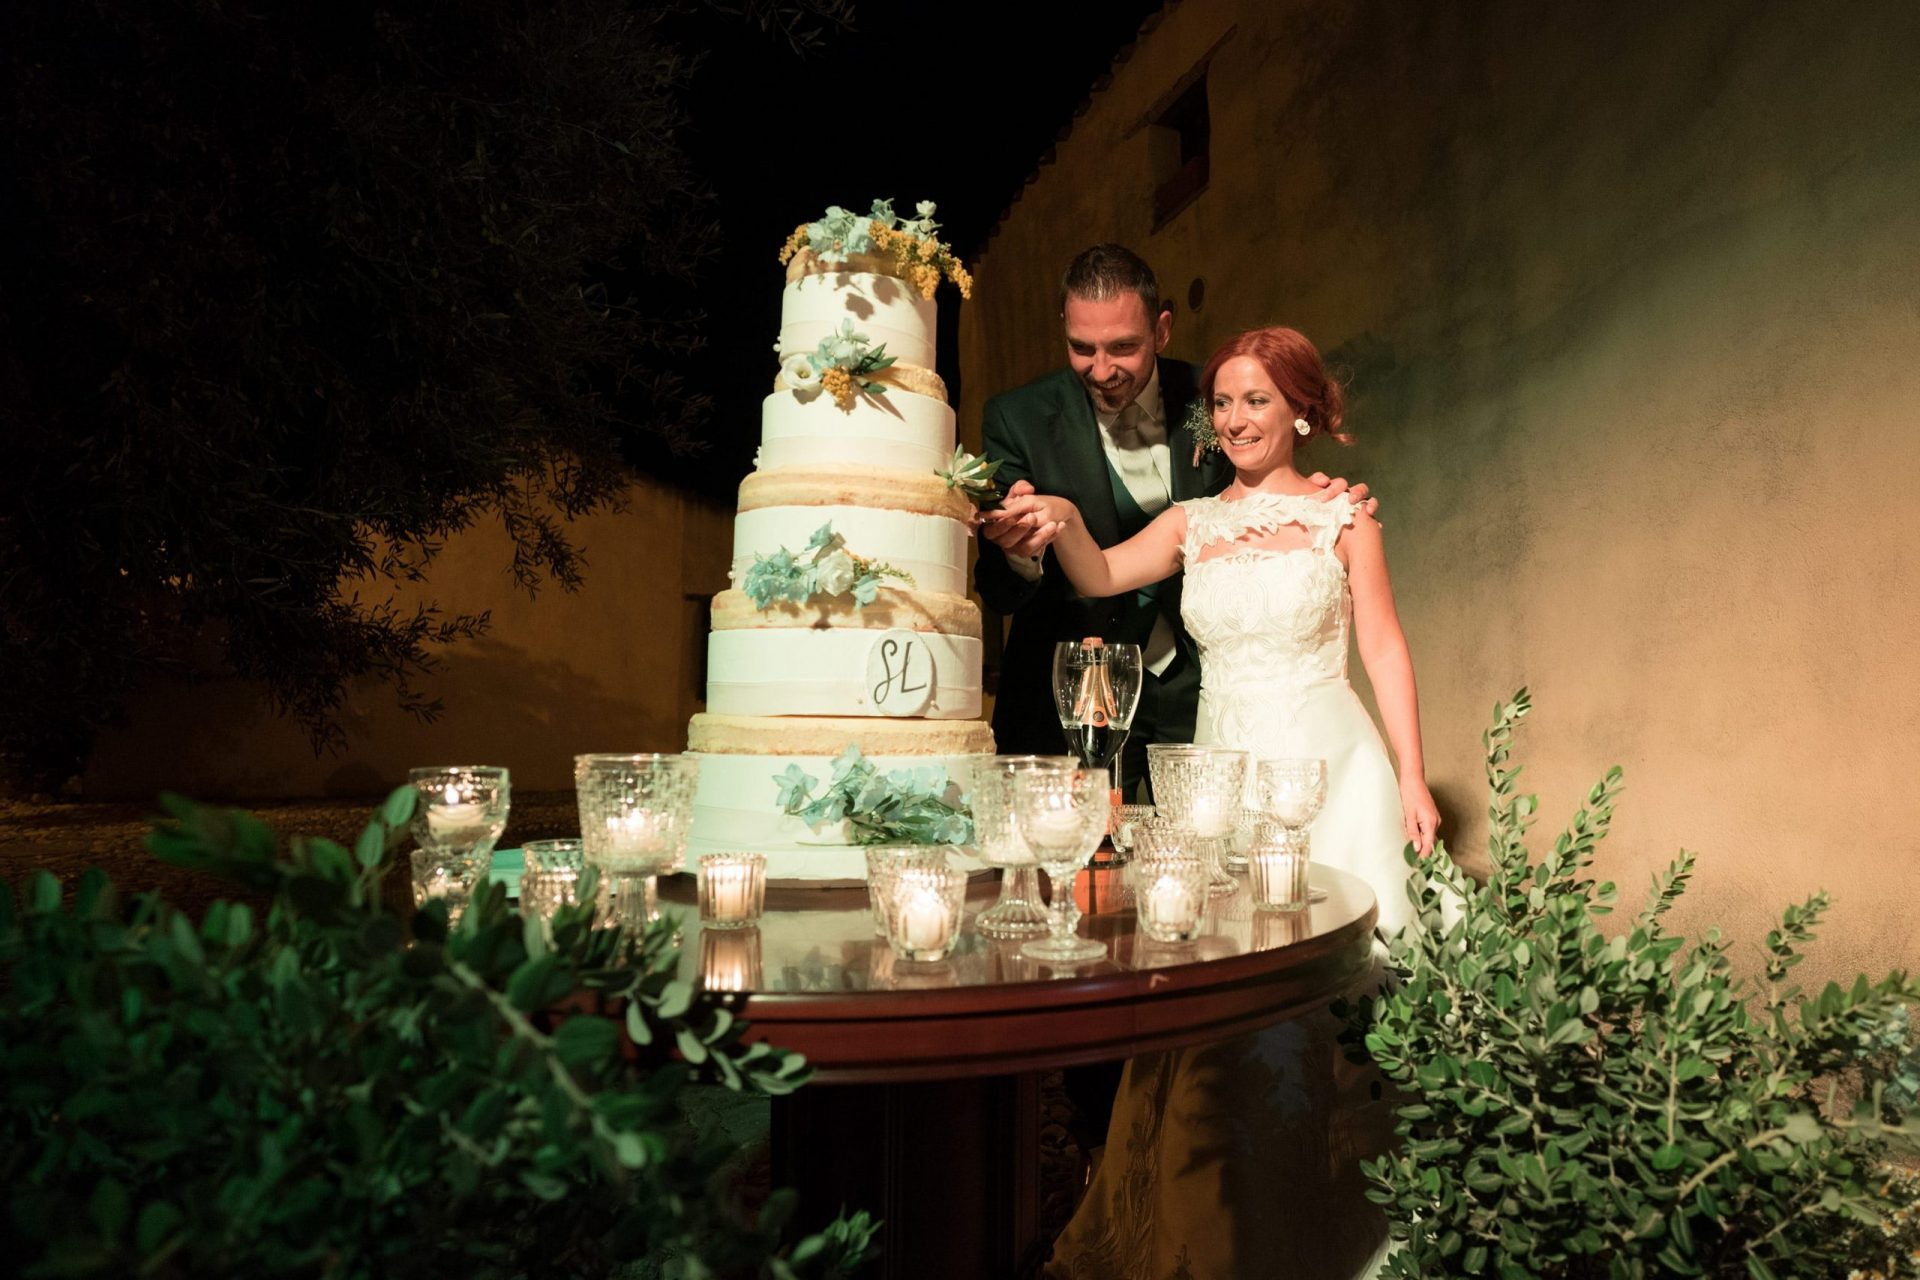 Sara and Leonardo, wedding cake